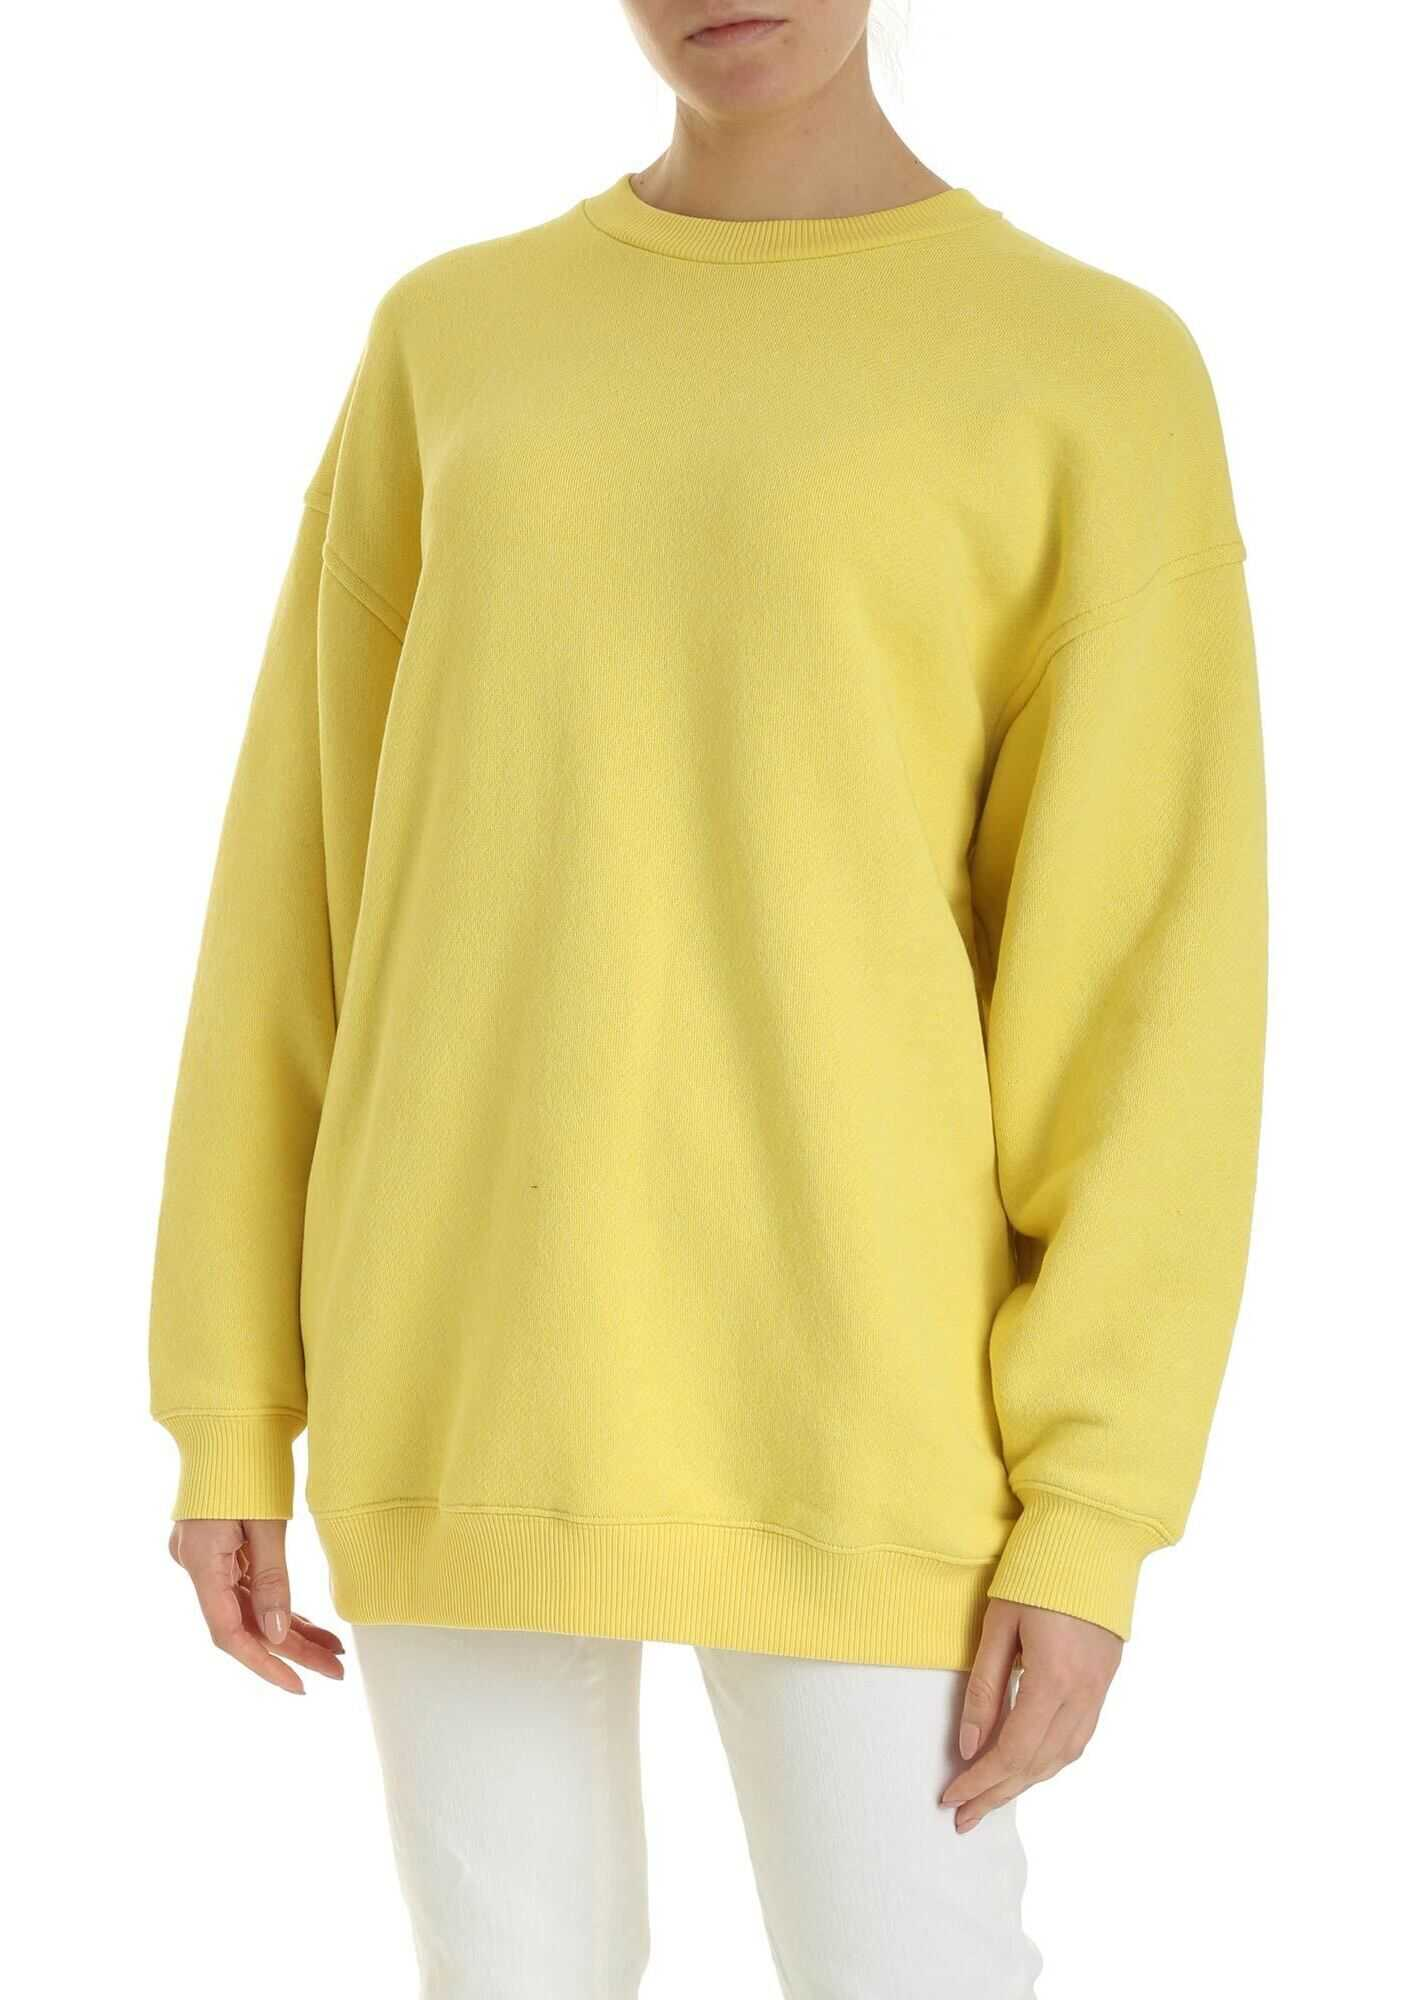 Acne Studios Inverted Label Sweatshirt In Canary Yellow Yellow